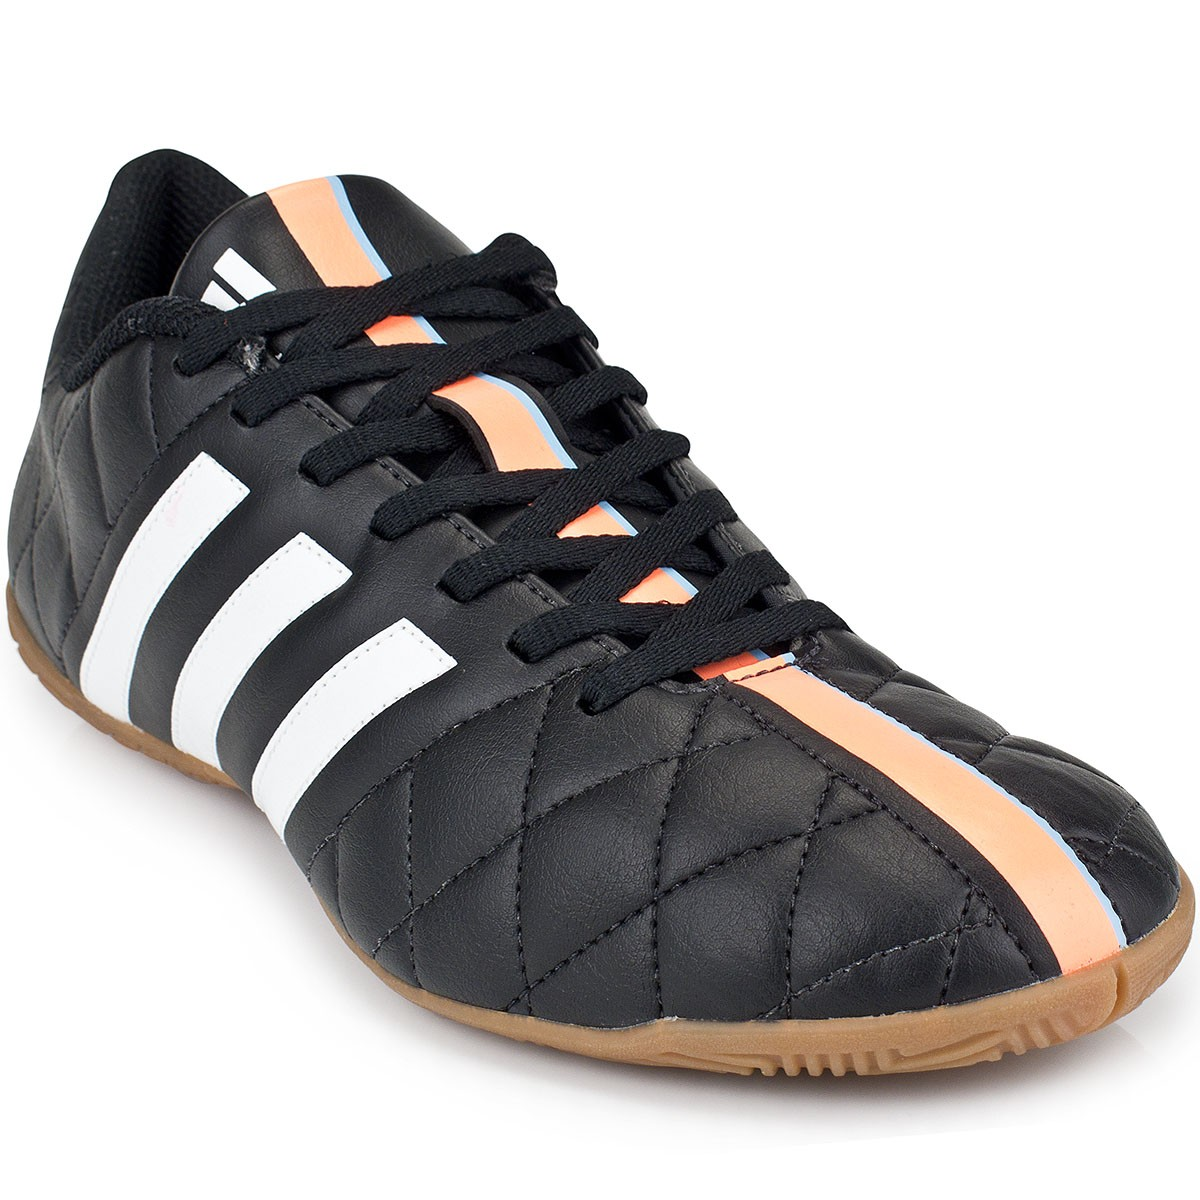 3831386ca3 Chuteira Adidas 11Questra IN